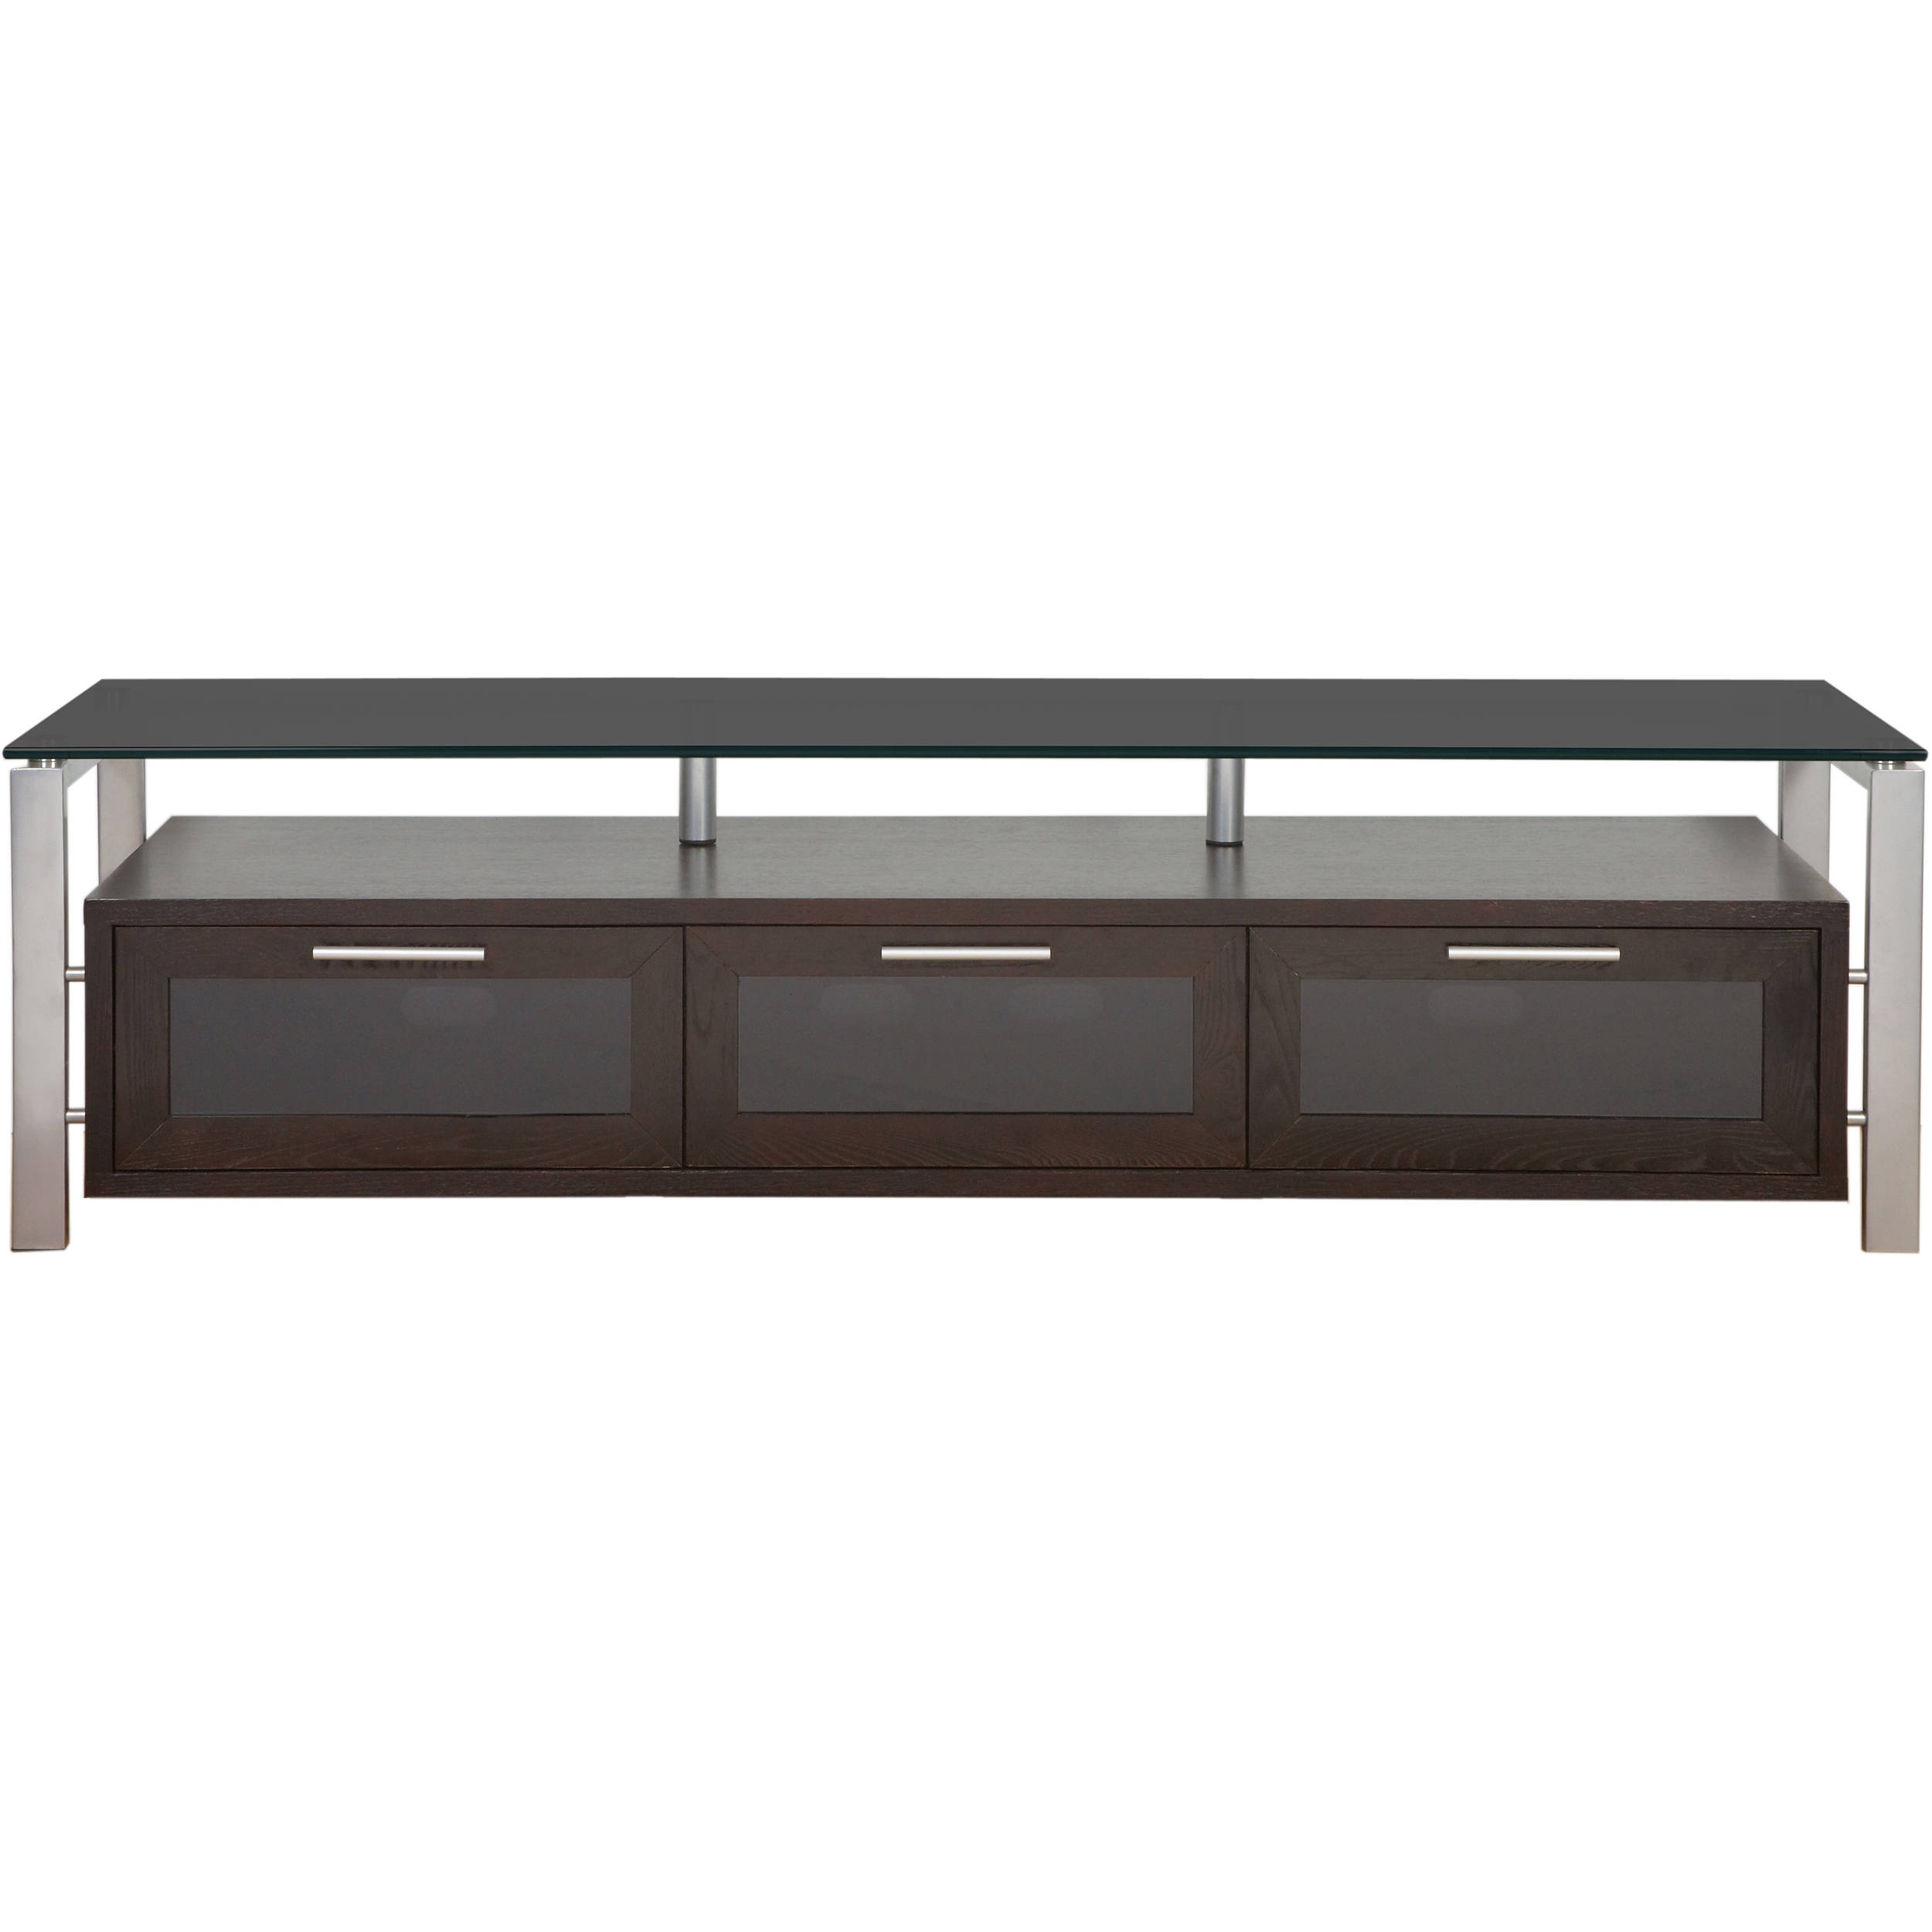 Plateau Decor 71 Tv Stand Espresso Finish Silver Legs Black Gl